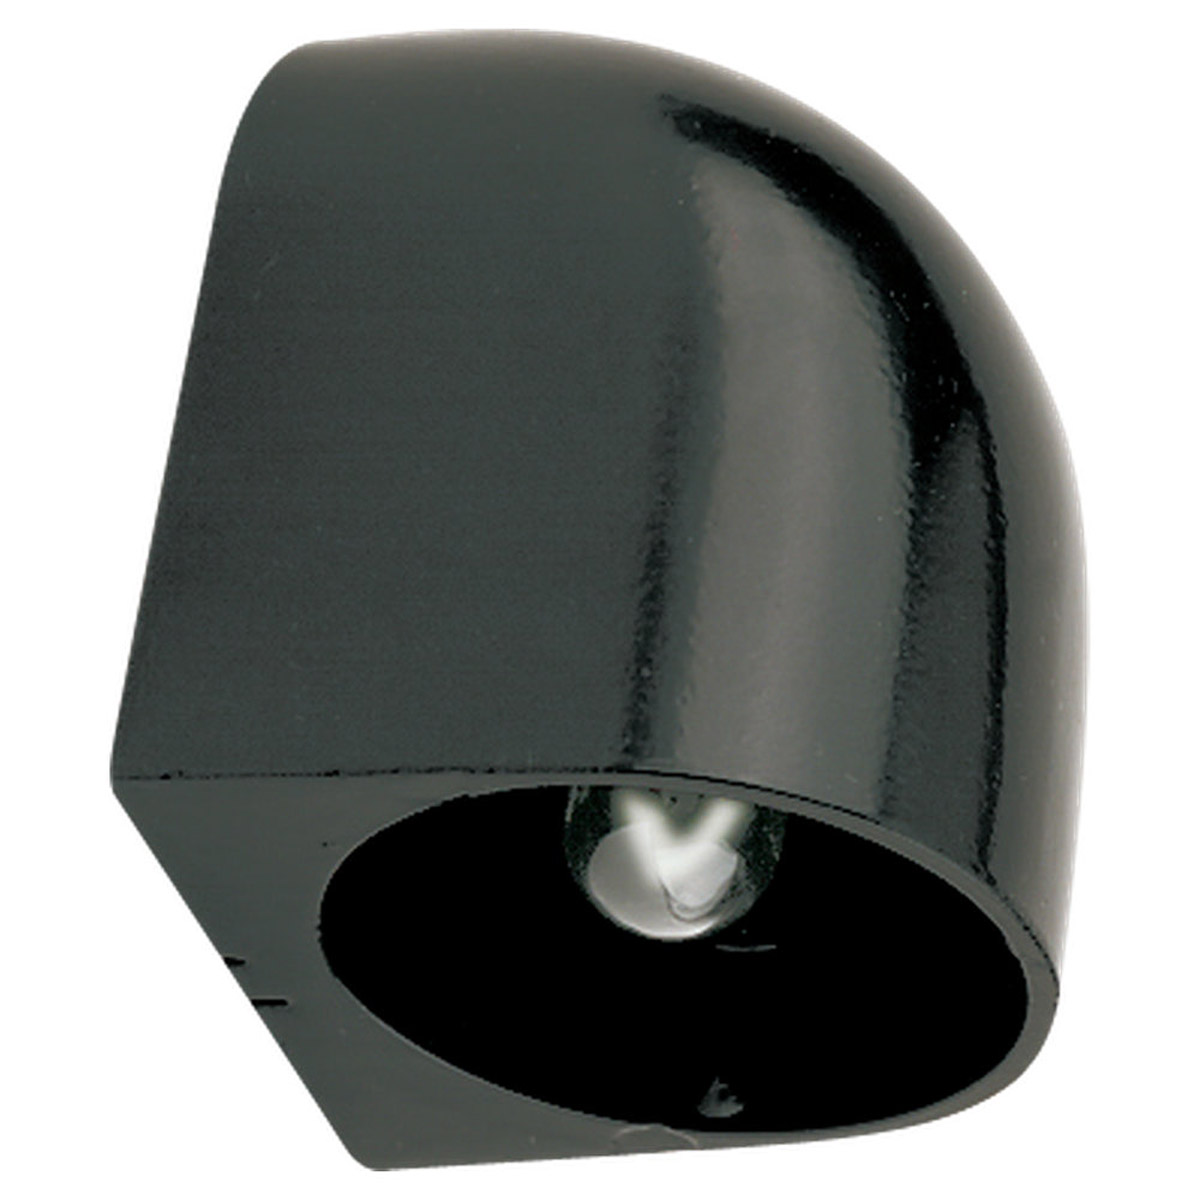 Sea Gull Lighting 2 Light Landscape Lighting Surface Mounted Deck Light in Black 9396-12 photo